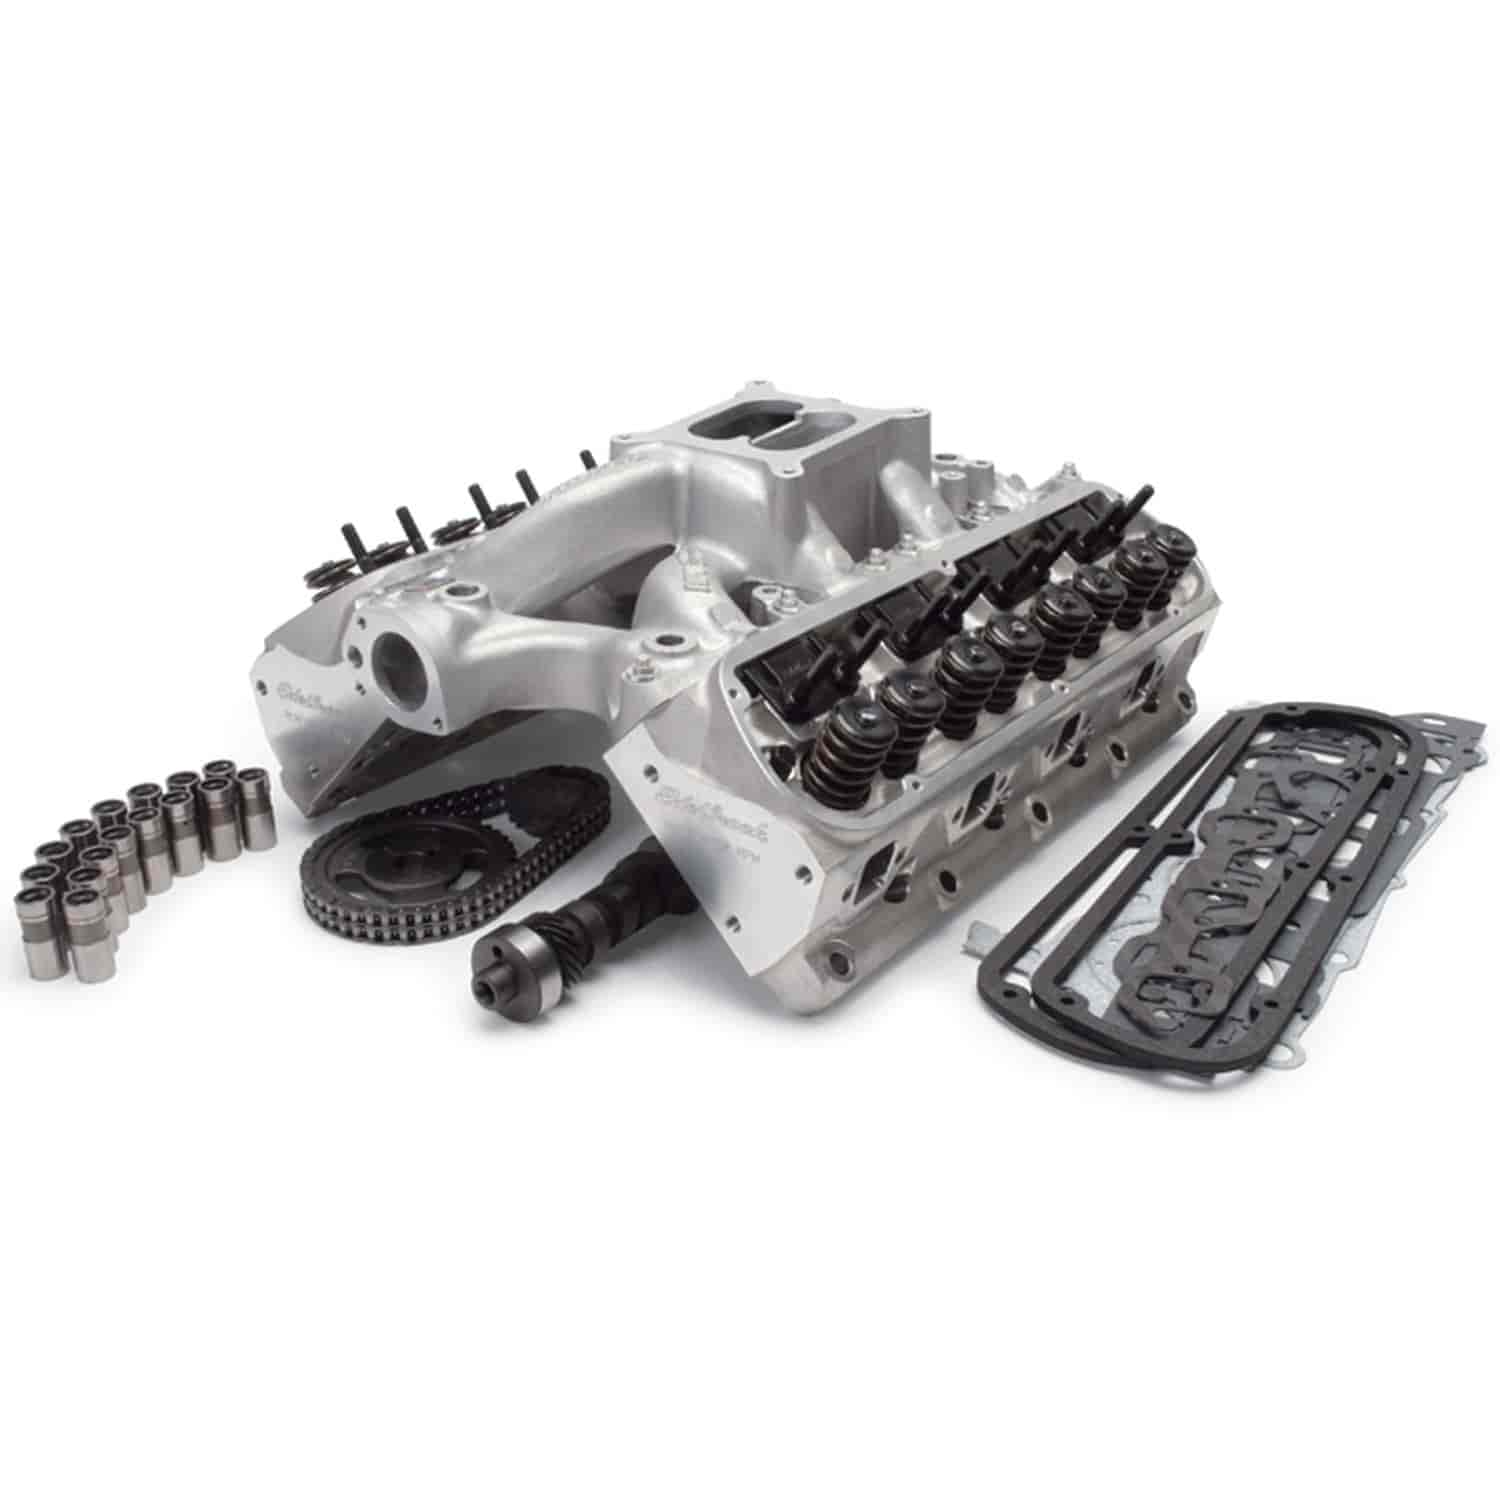 Edelbrock RPM Power Package Top End Kit for 1962-1981 Small Block Ford  289-302